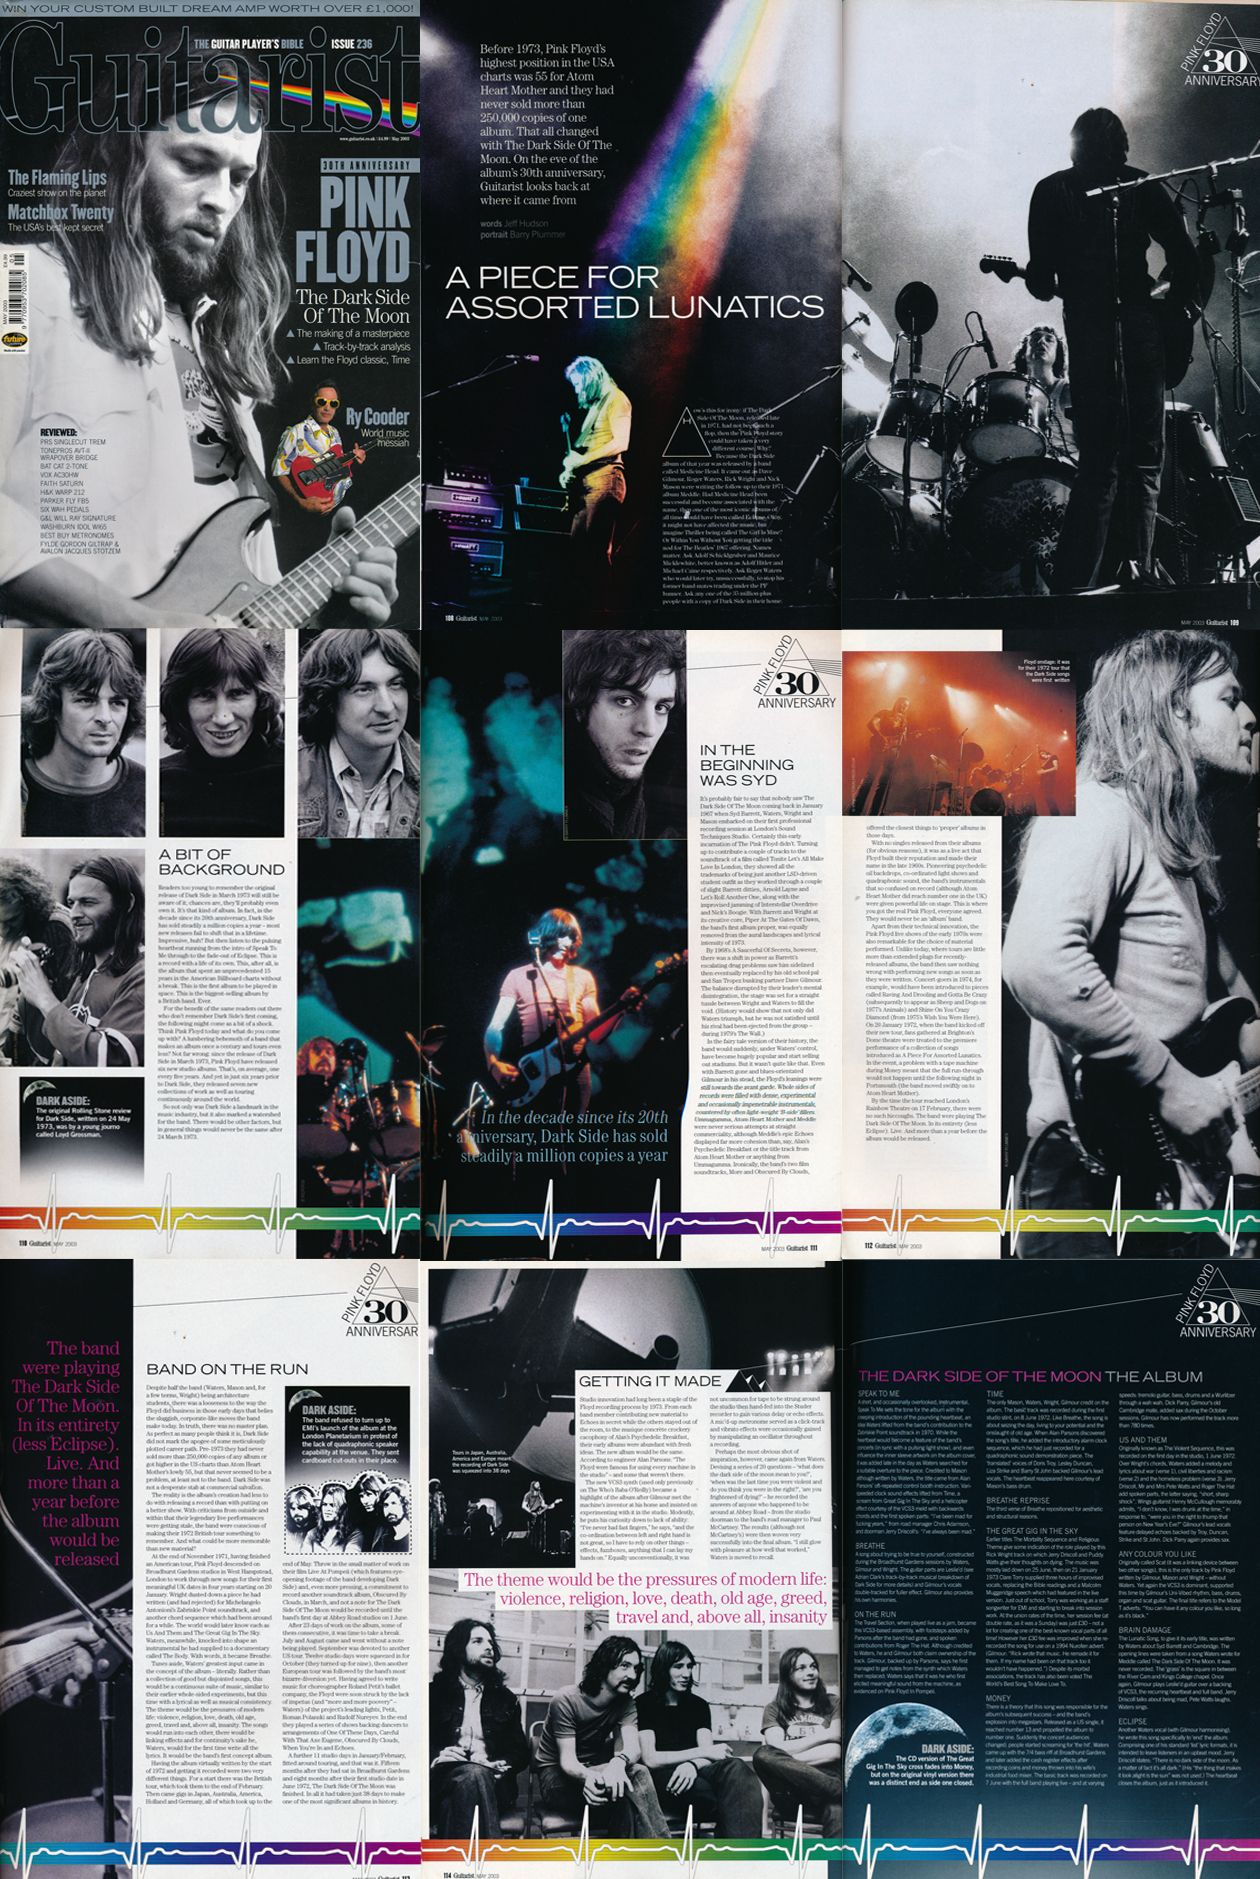 Pink Floyd in Guitarist magazine may 2003